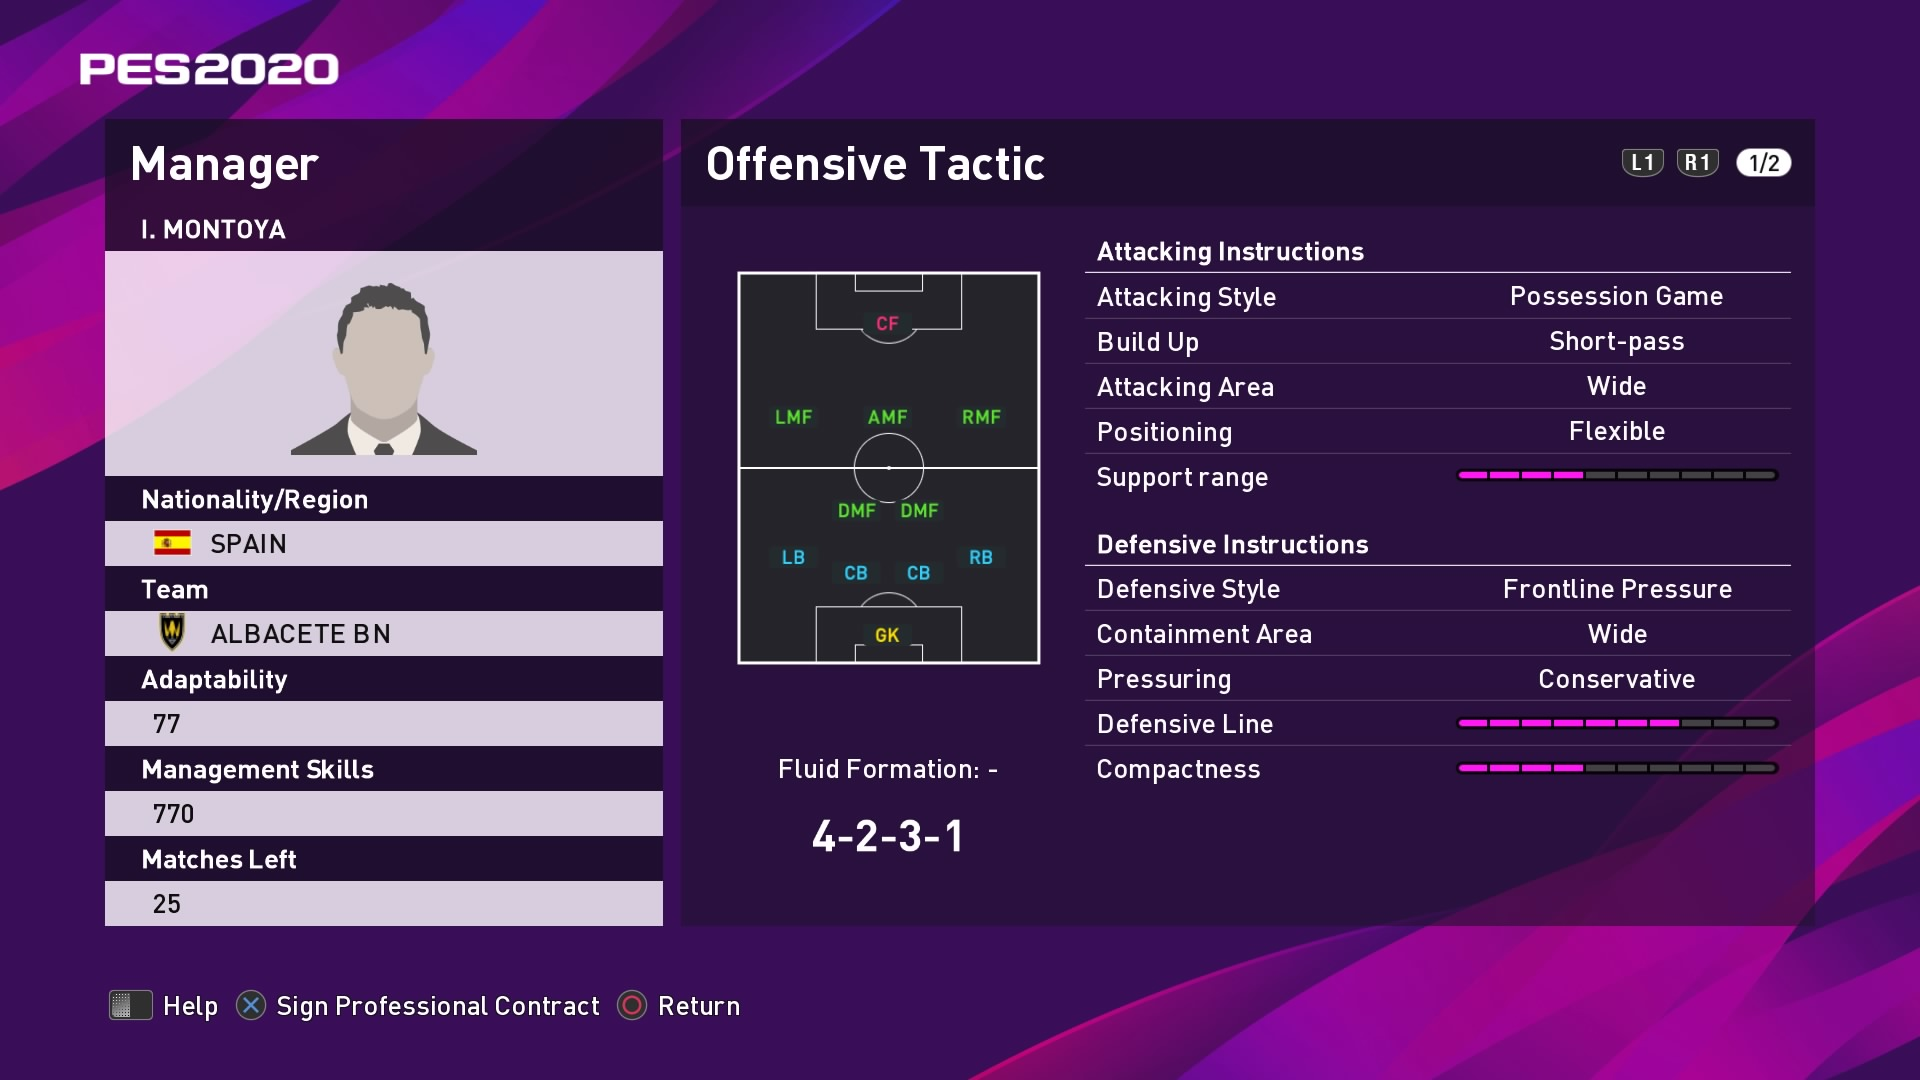 I. Montoya (Luis Miguel Ramis) Offensive Tactic in PES 2020 myClub